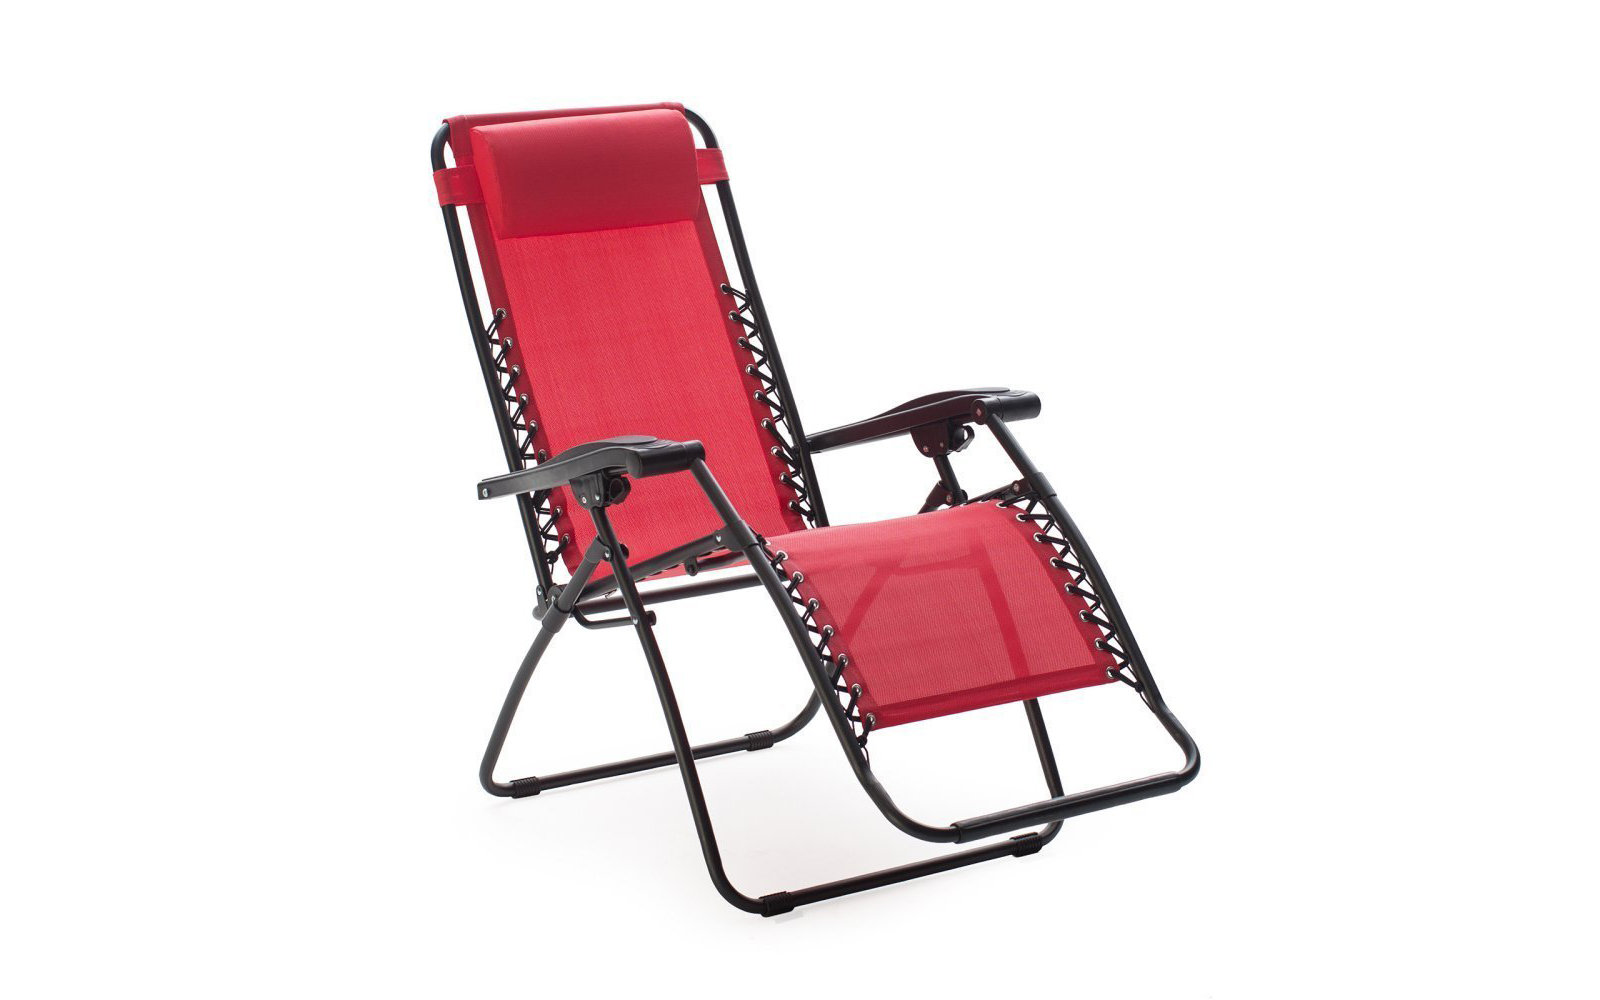 banquet chair accessories boat chairs for sale the best folding camping travel 43 leisure